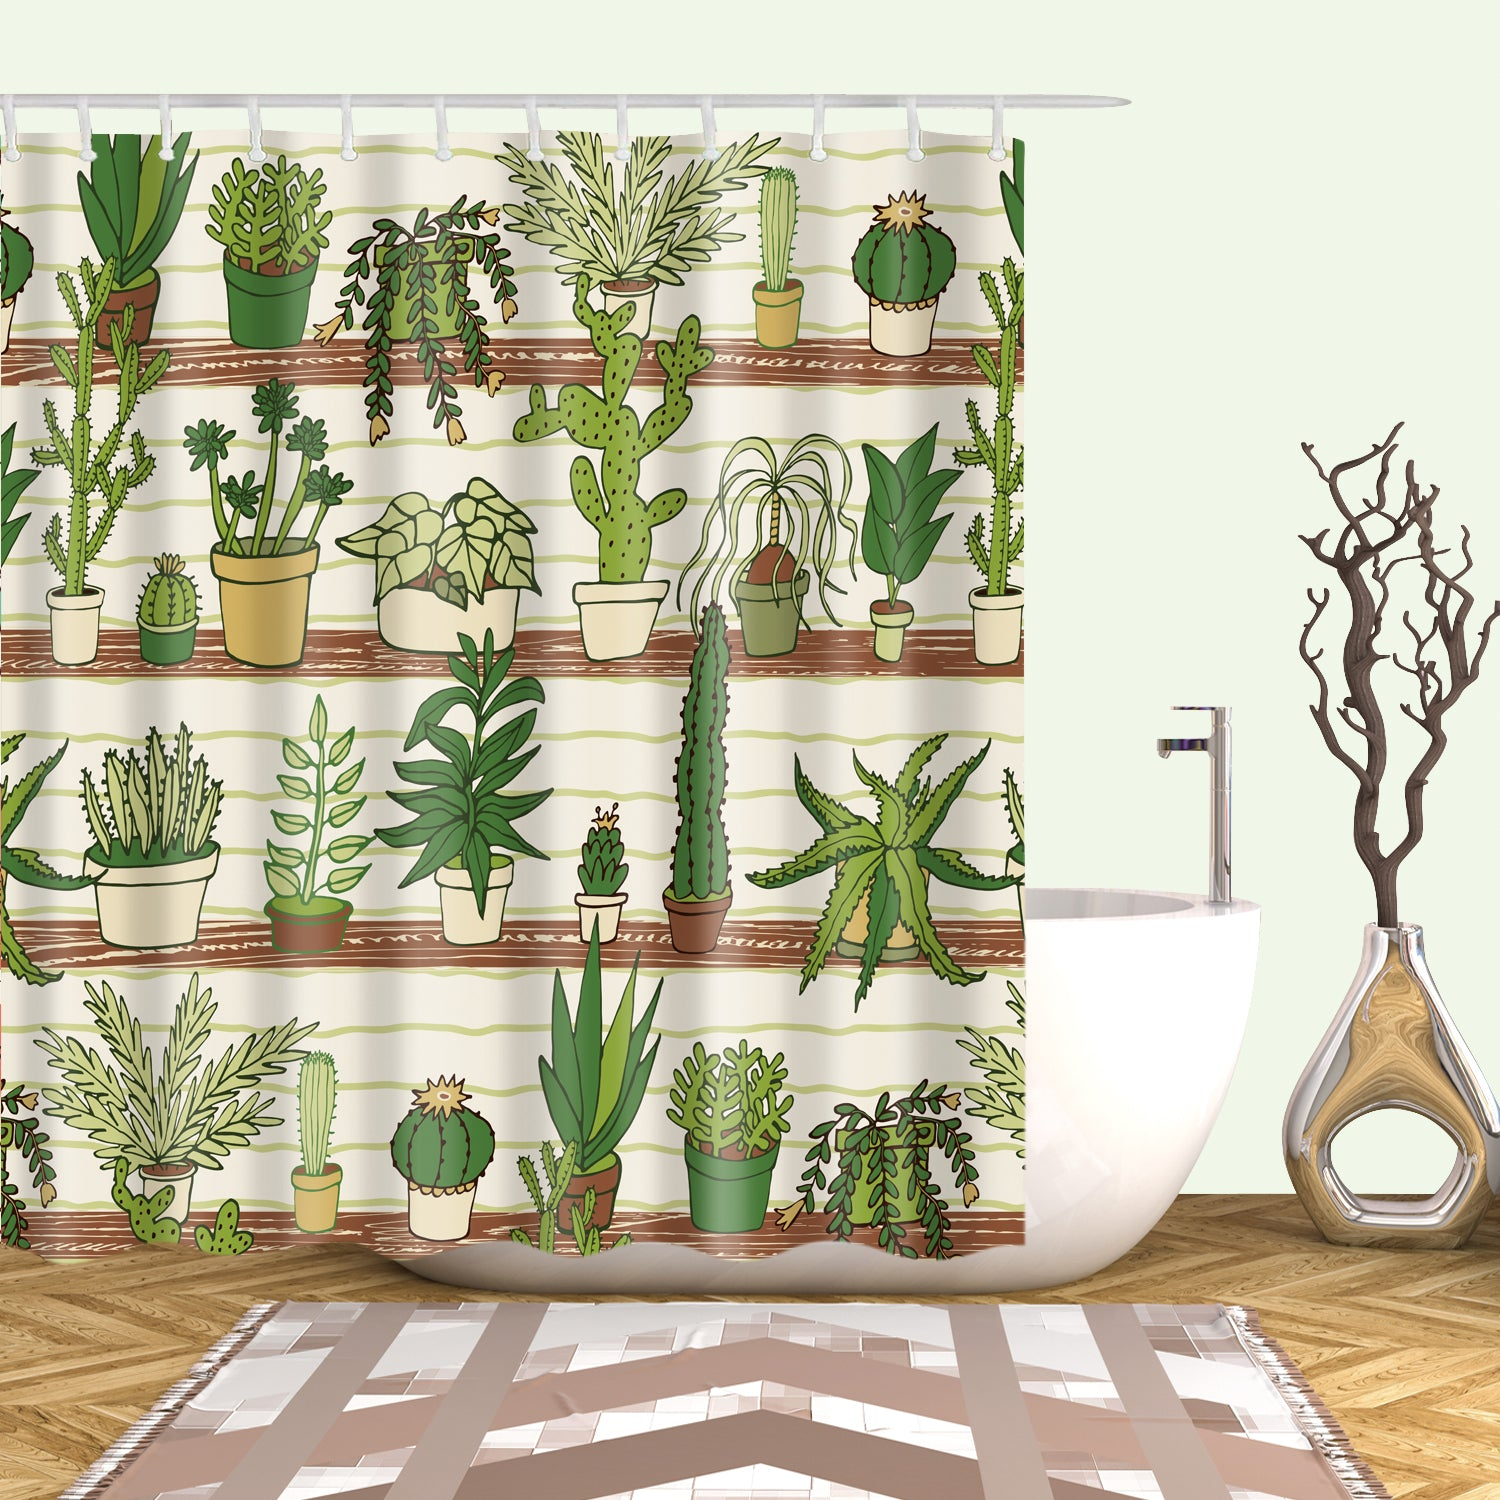 Houseplant Display Cactus Green Plant Shower Curtain